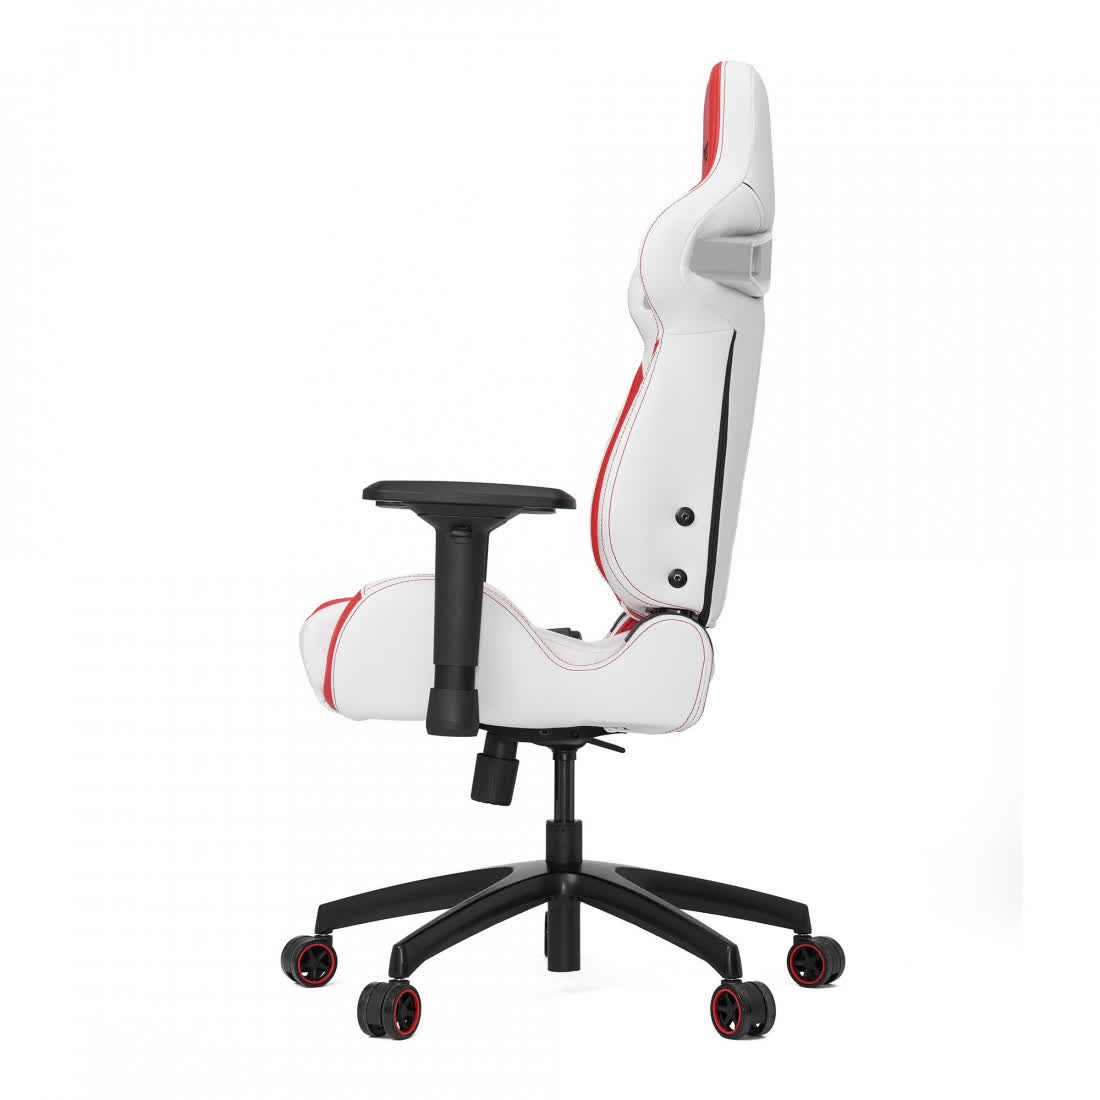 Pleasant Vertagear S Line Sl4000 Gaming Chair Andrewgaddart Wooden Chair Designs For Living Room Andrewgaddartcom